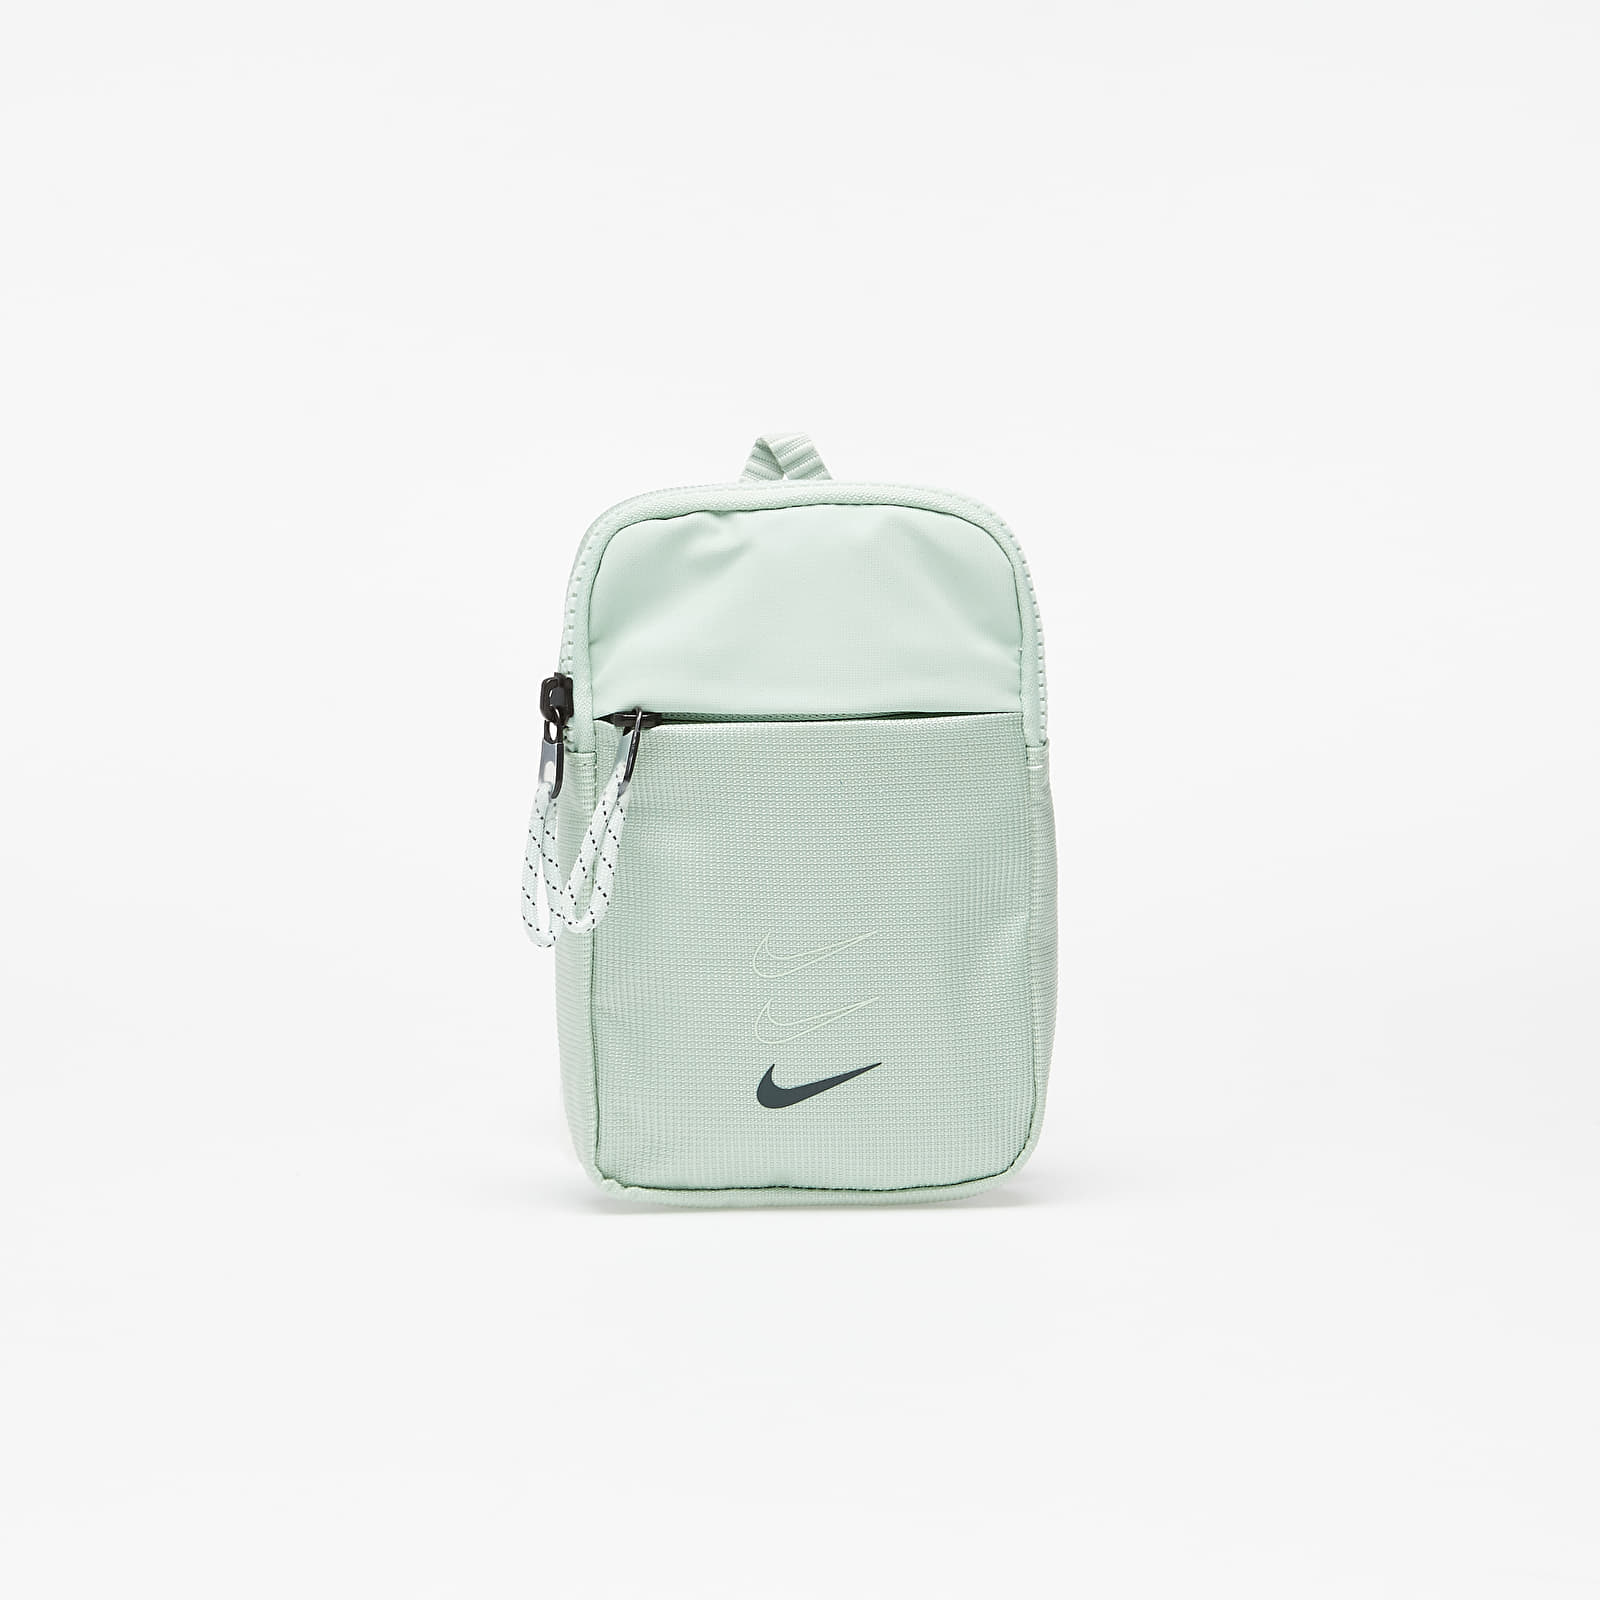 Sacs à dos Nike Sportswear Essentials S Hip Pack Pistachio Frost/ Seaweed/ Seaweed